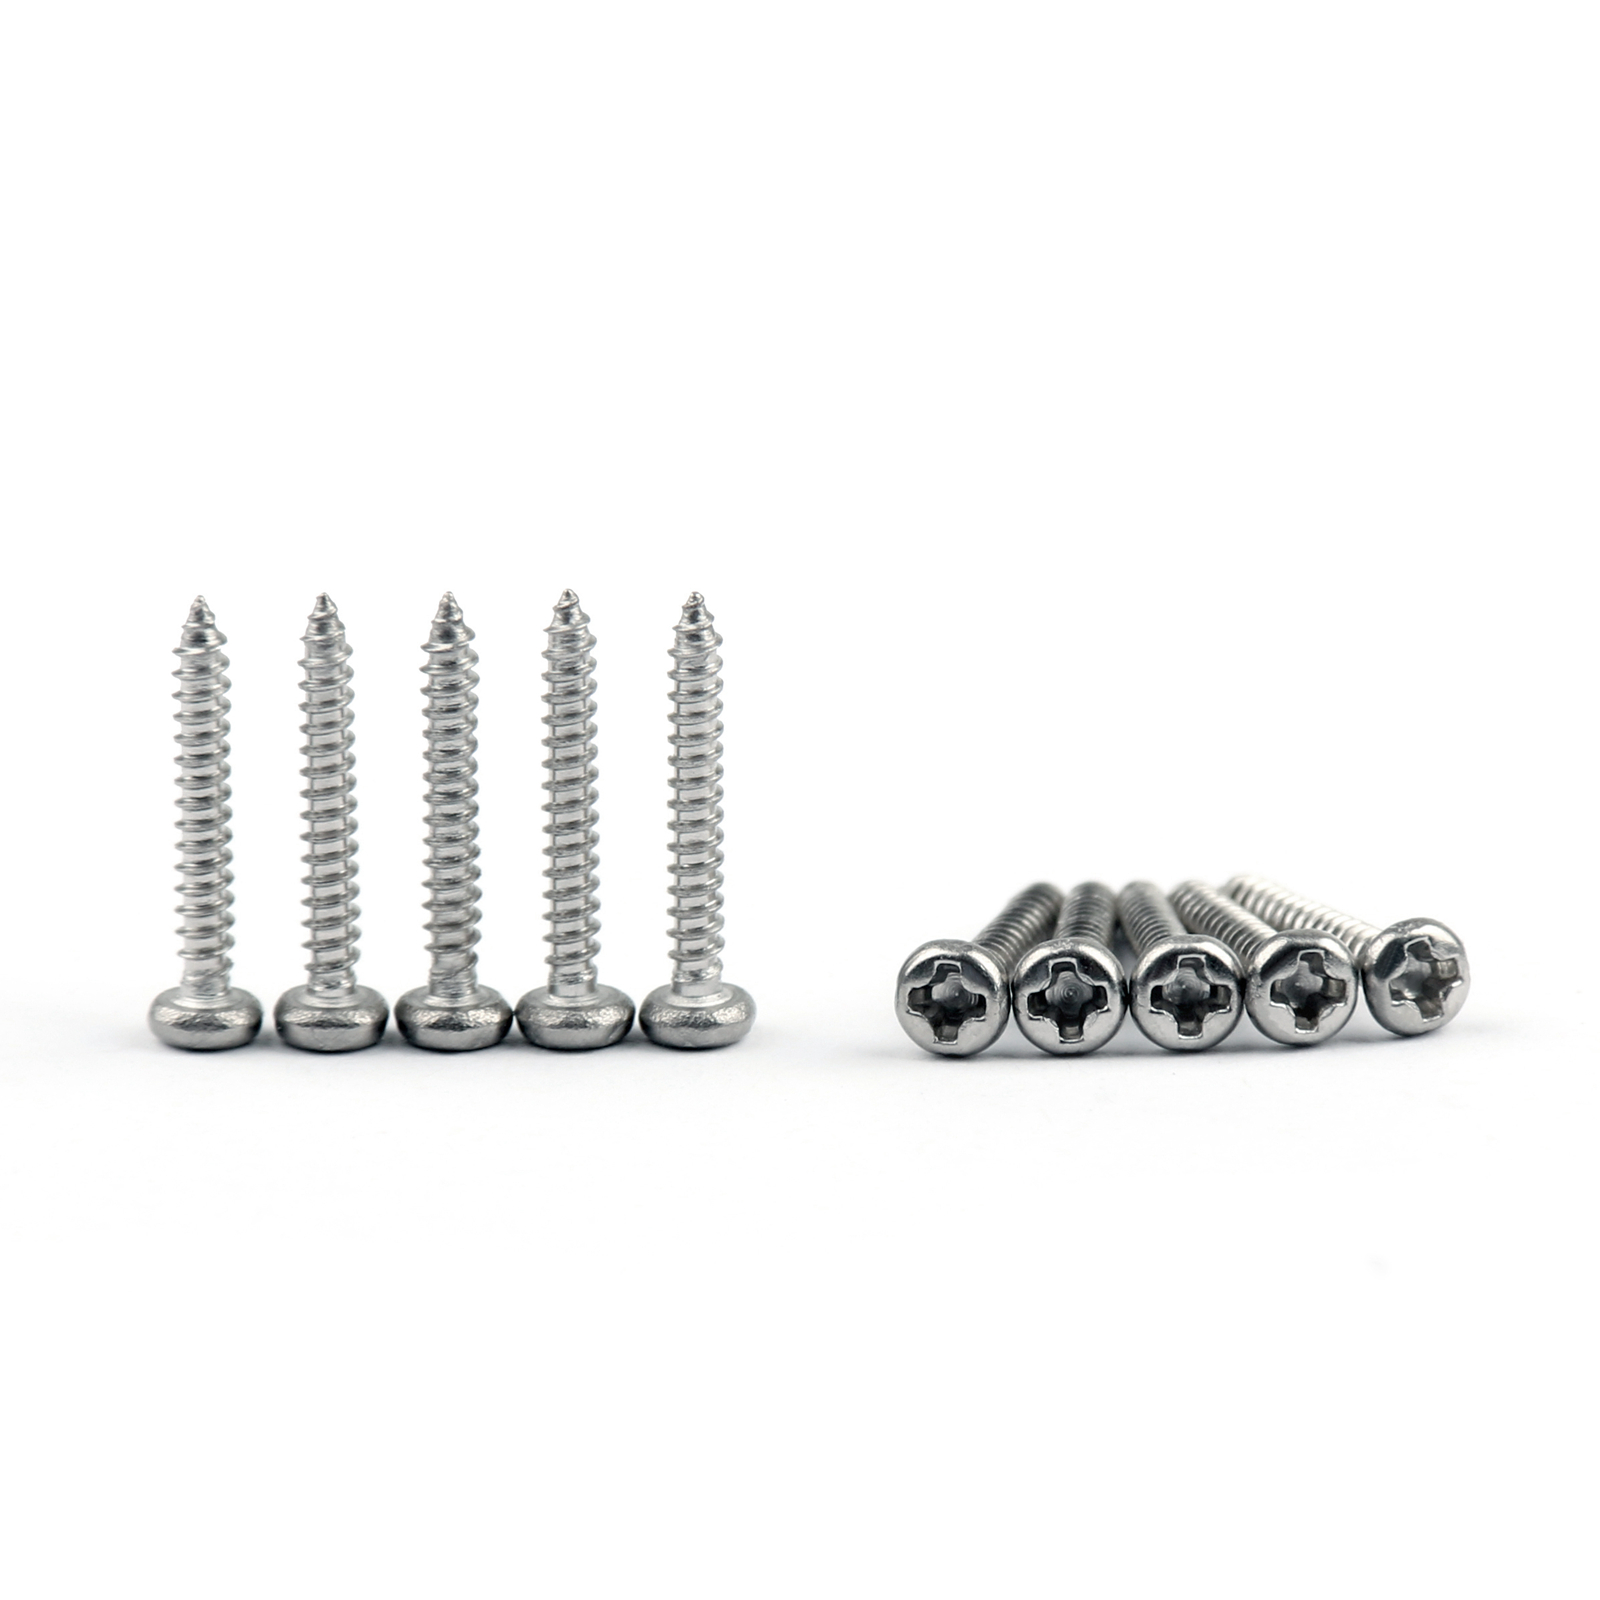 M2.3/M2.6 Phillips Round Head Screw Alloy Self Tapping